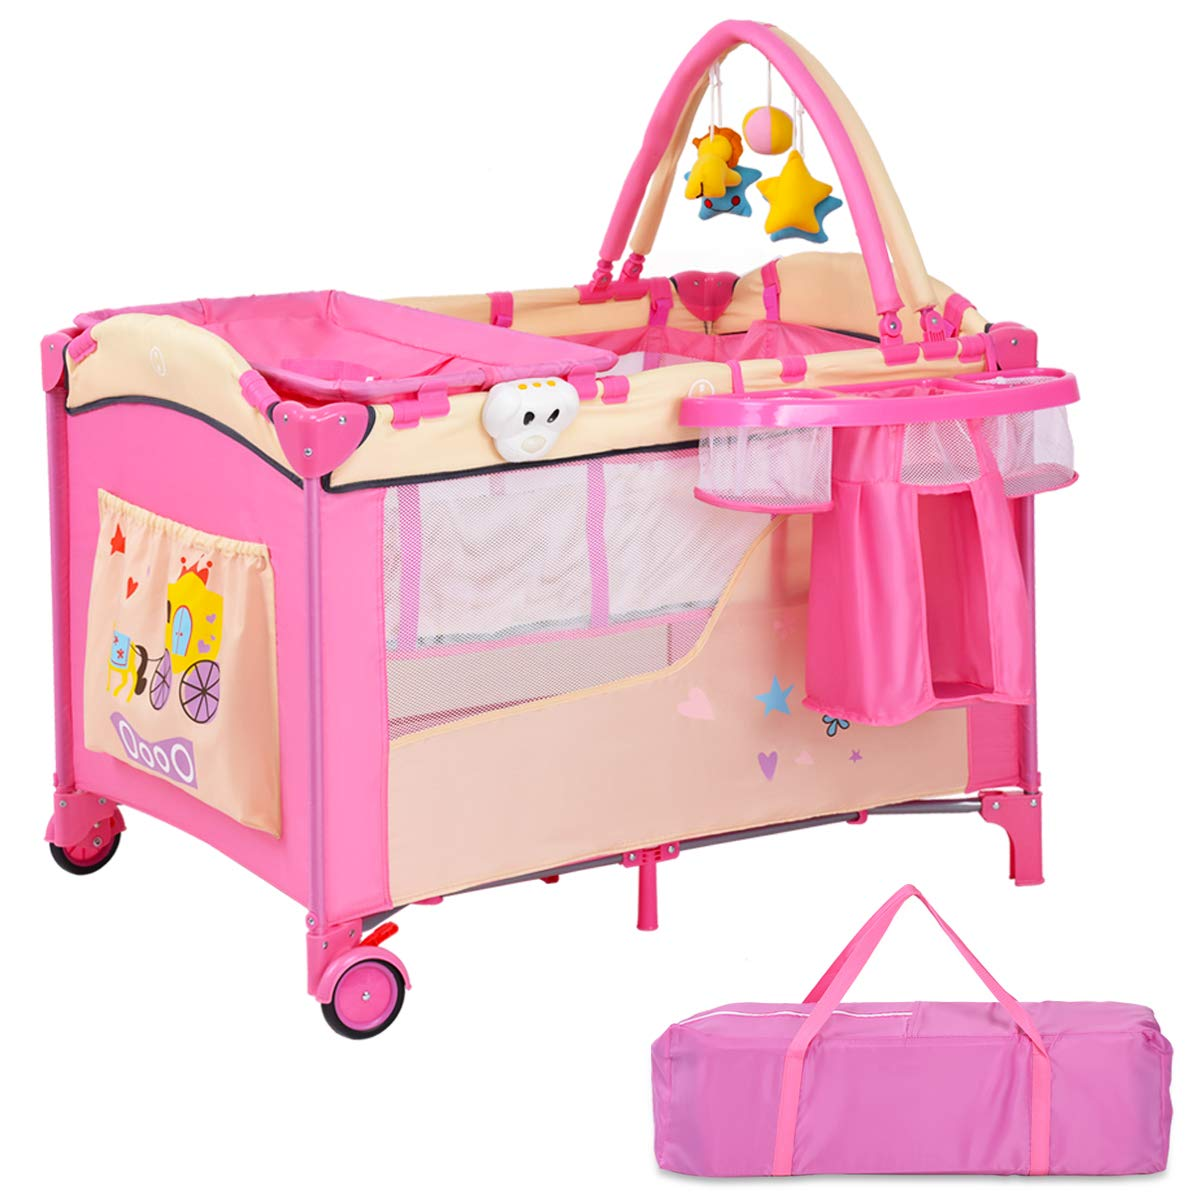 COSTWAY Pink Baby Infant Cot Bed Diaper Changer Toy Storage Bassinet Playpen W/Music Box & Carry Bag 2 Types Available with Storage Space Basket /with Mosquito Net (Infant Cot with Storage Space Basket)